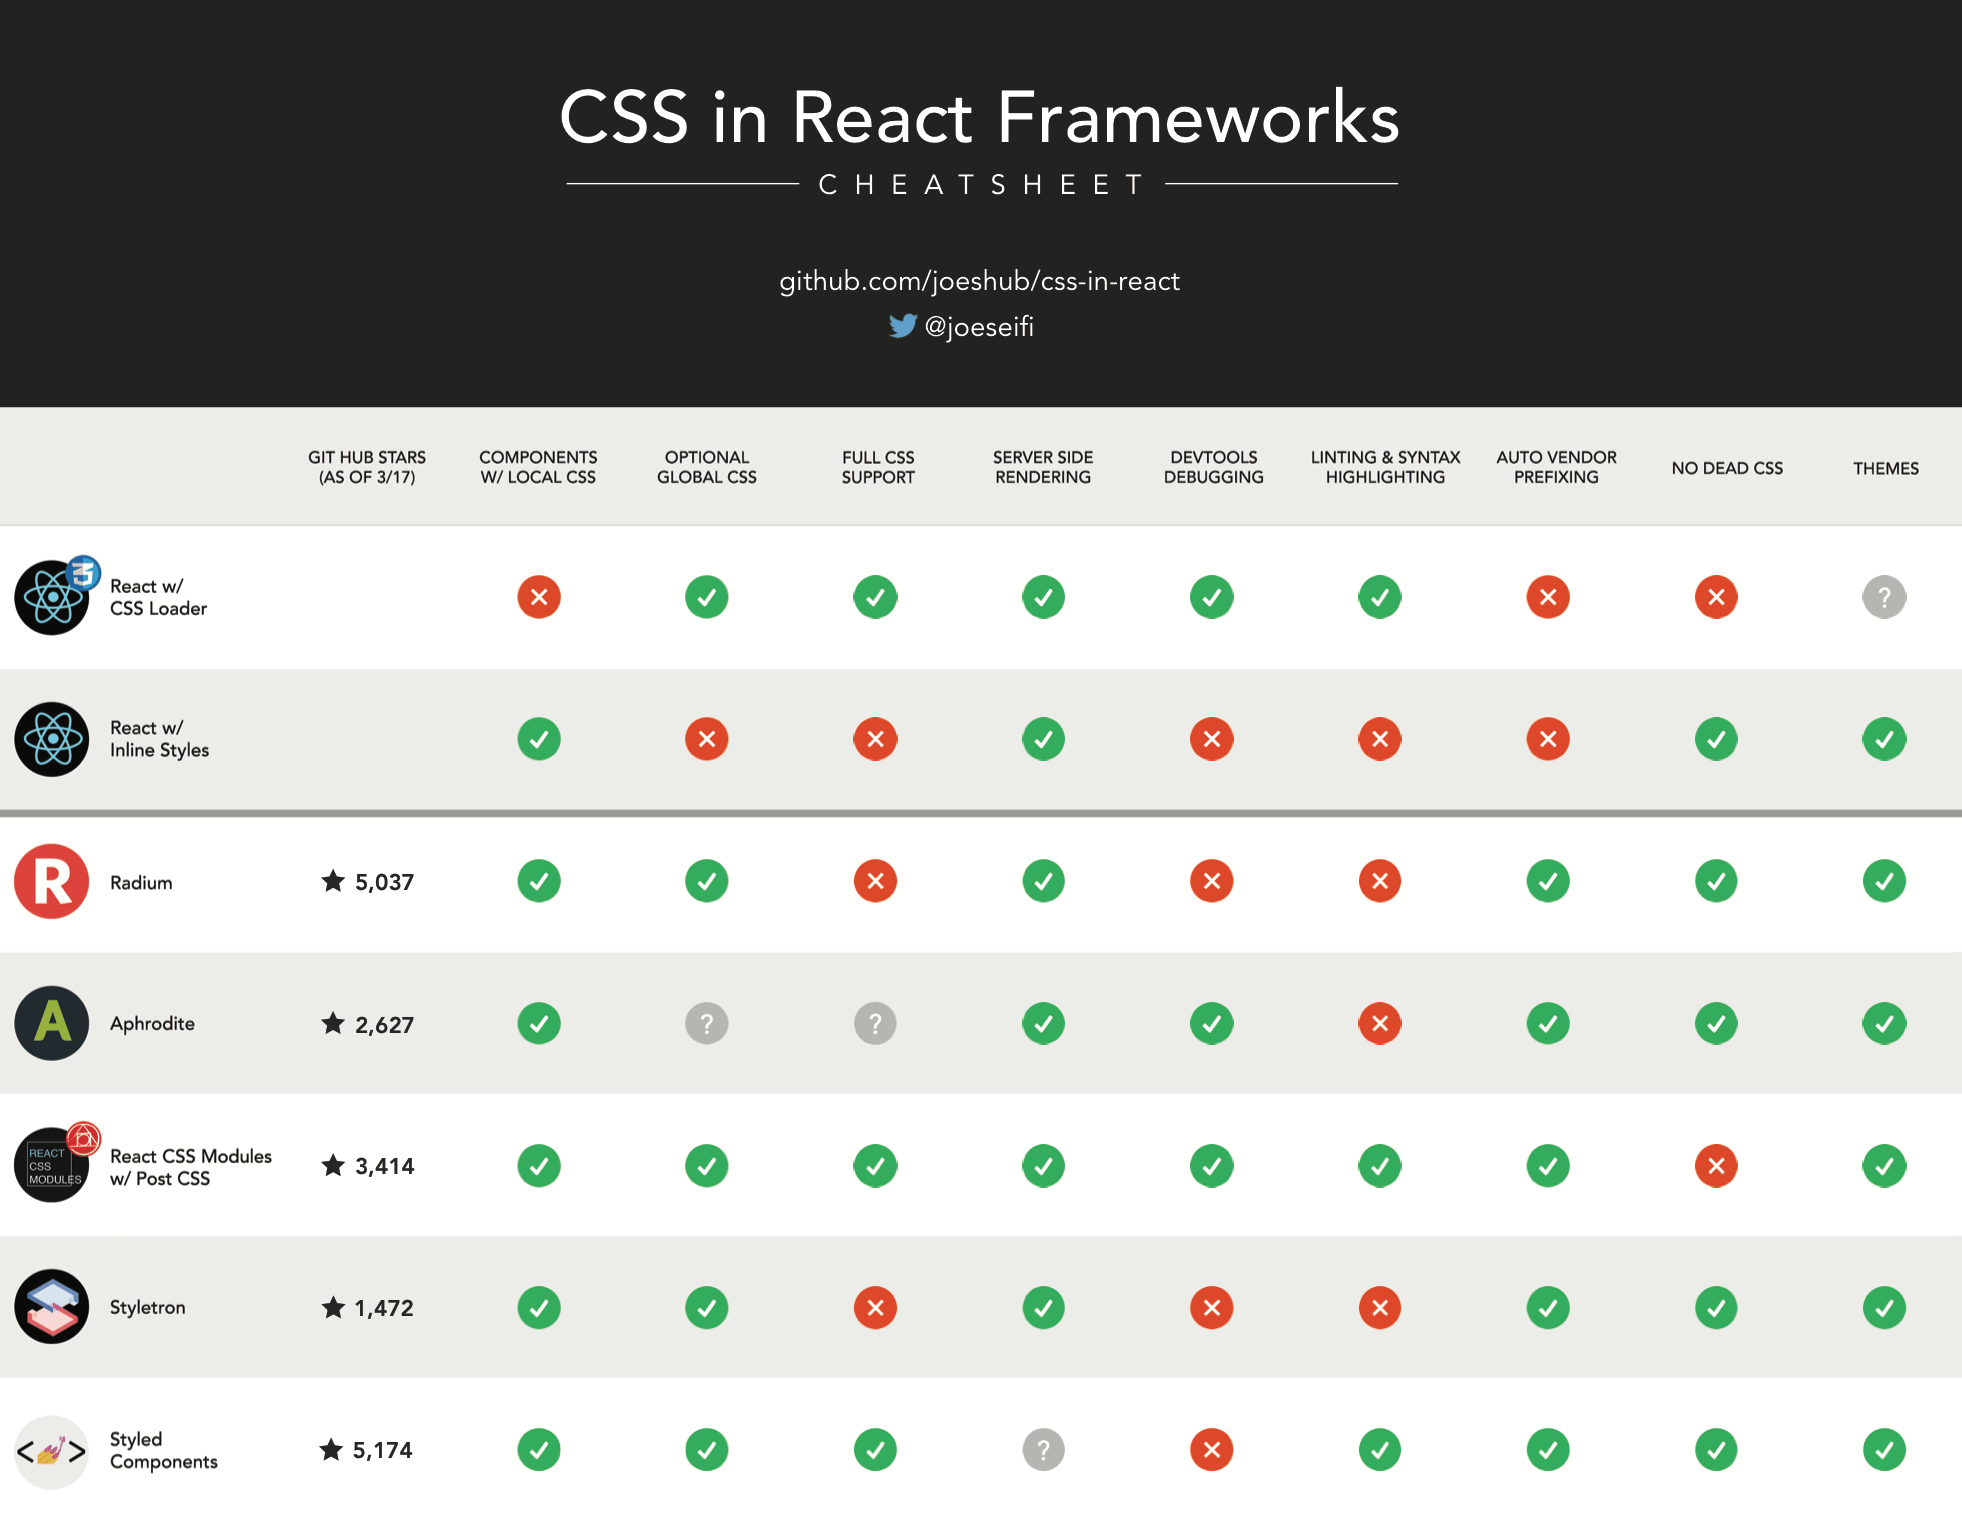 CSS in React Cheat Sheet